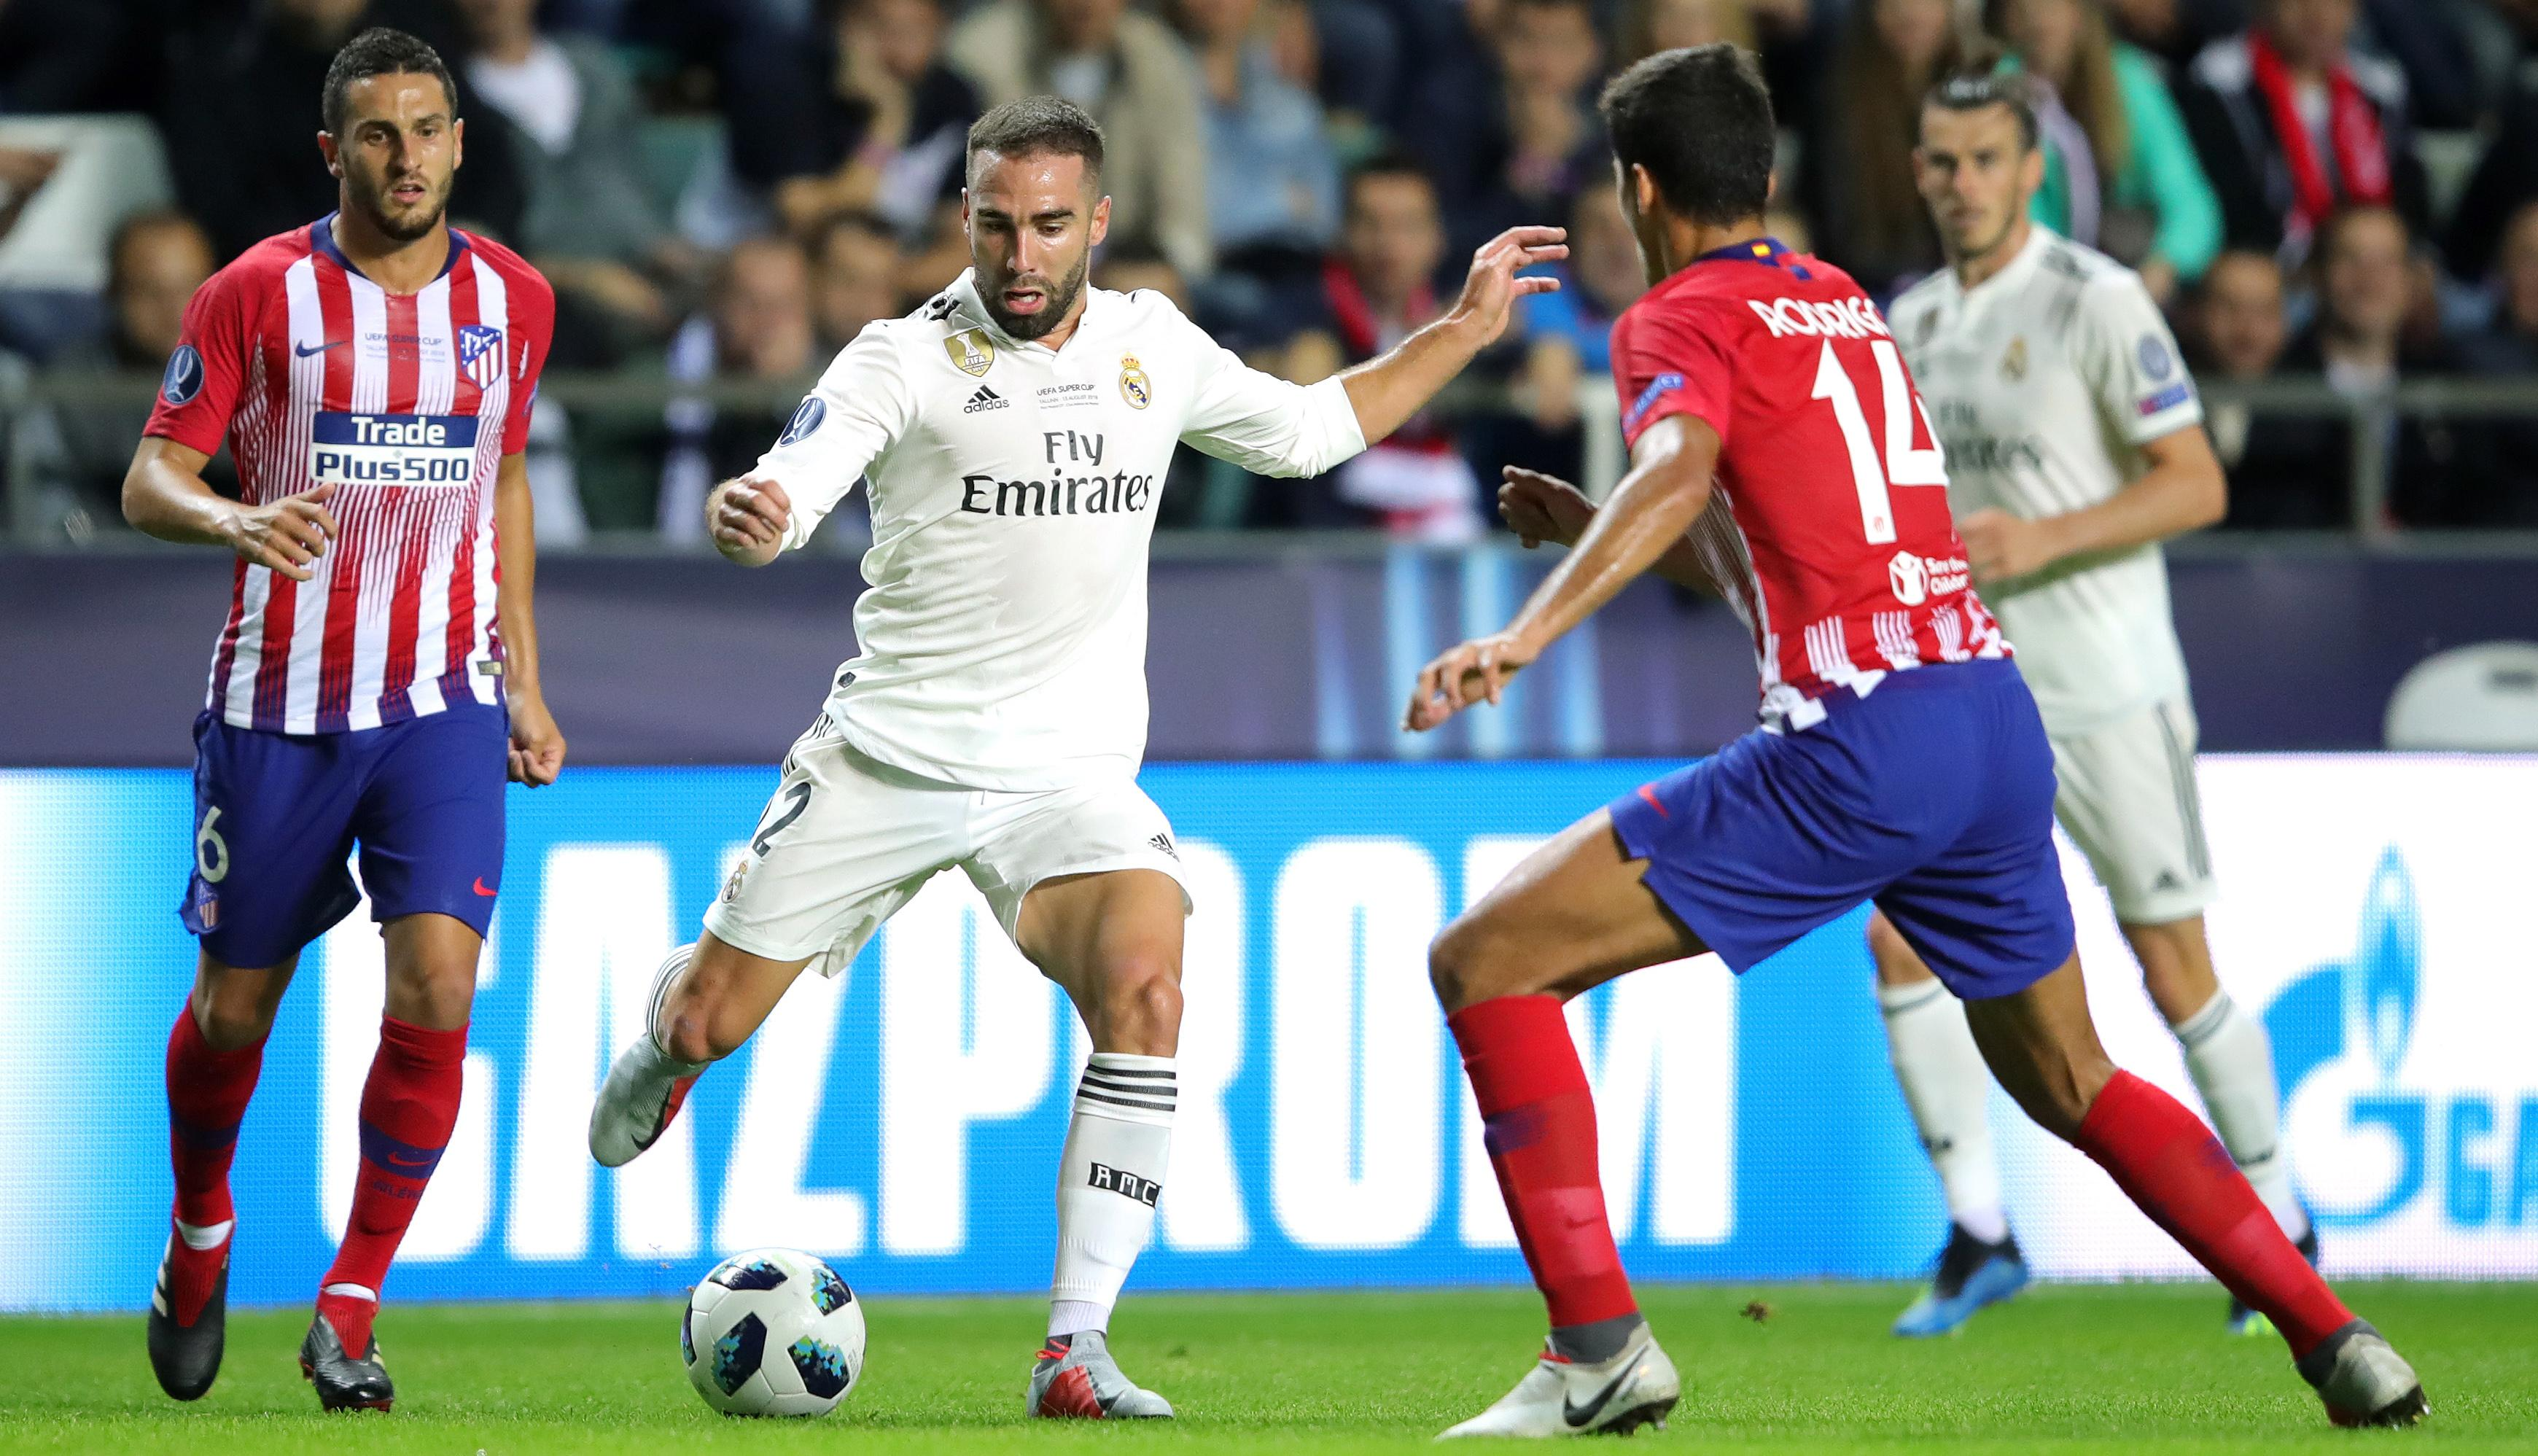 Image Result For Real Madrid Atletico Madrid En Vivo En Directo